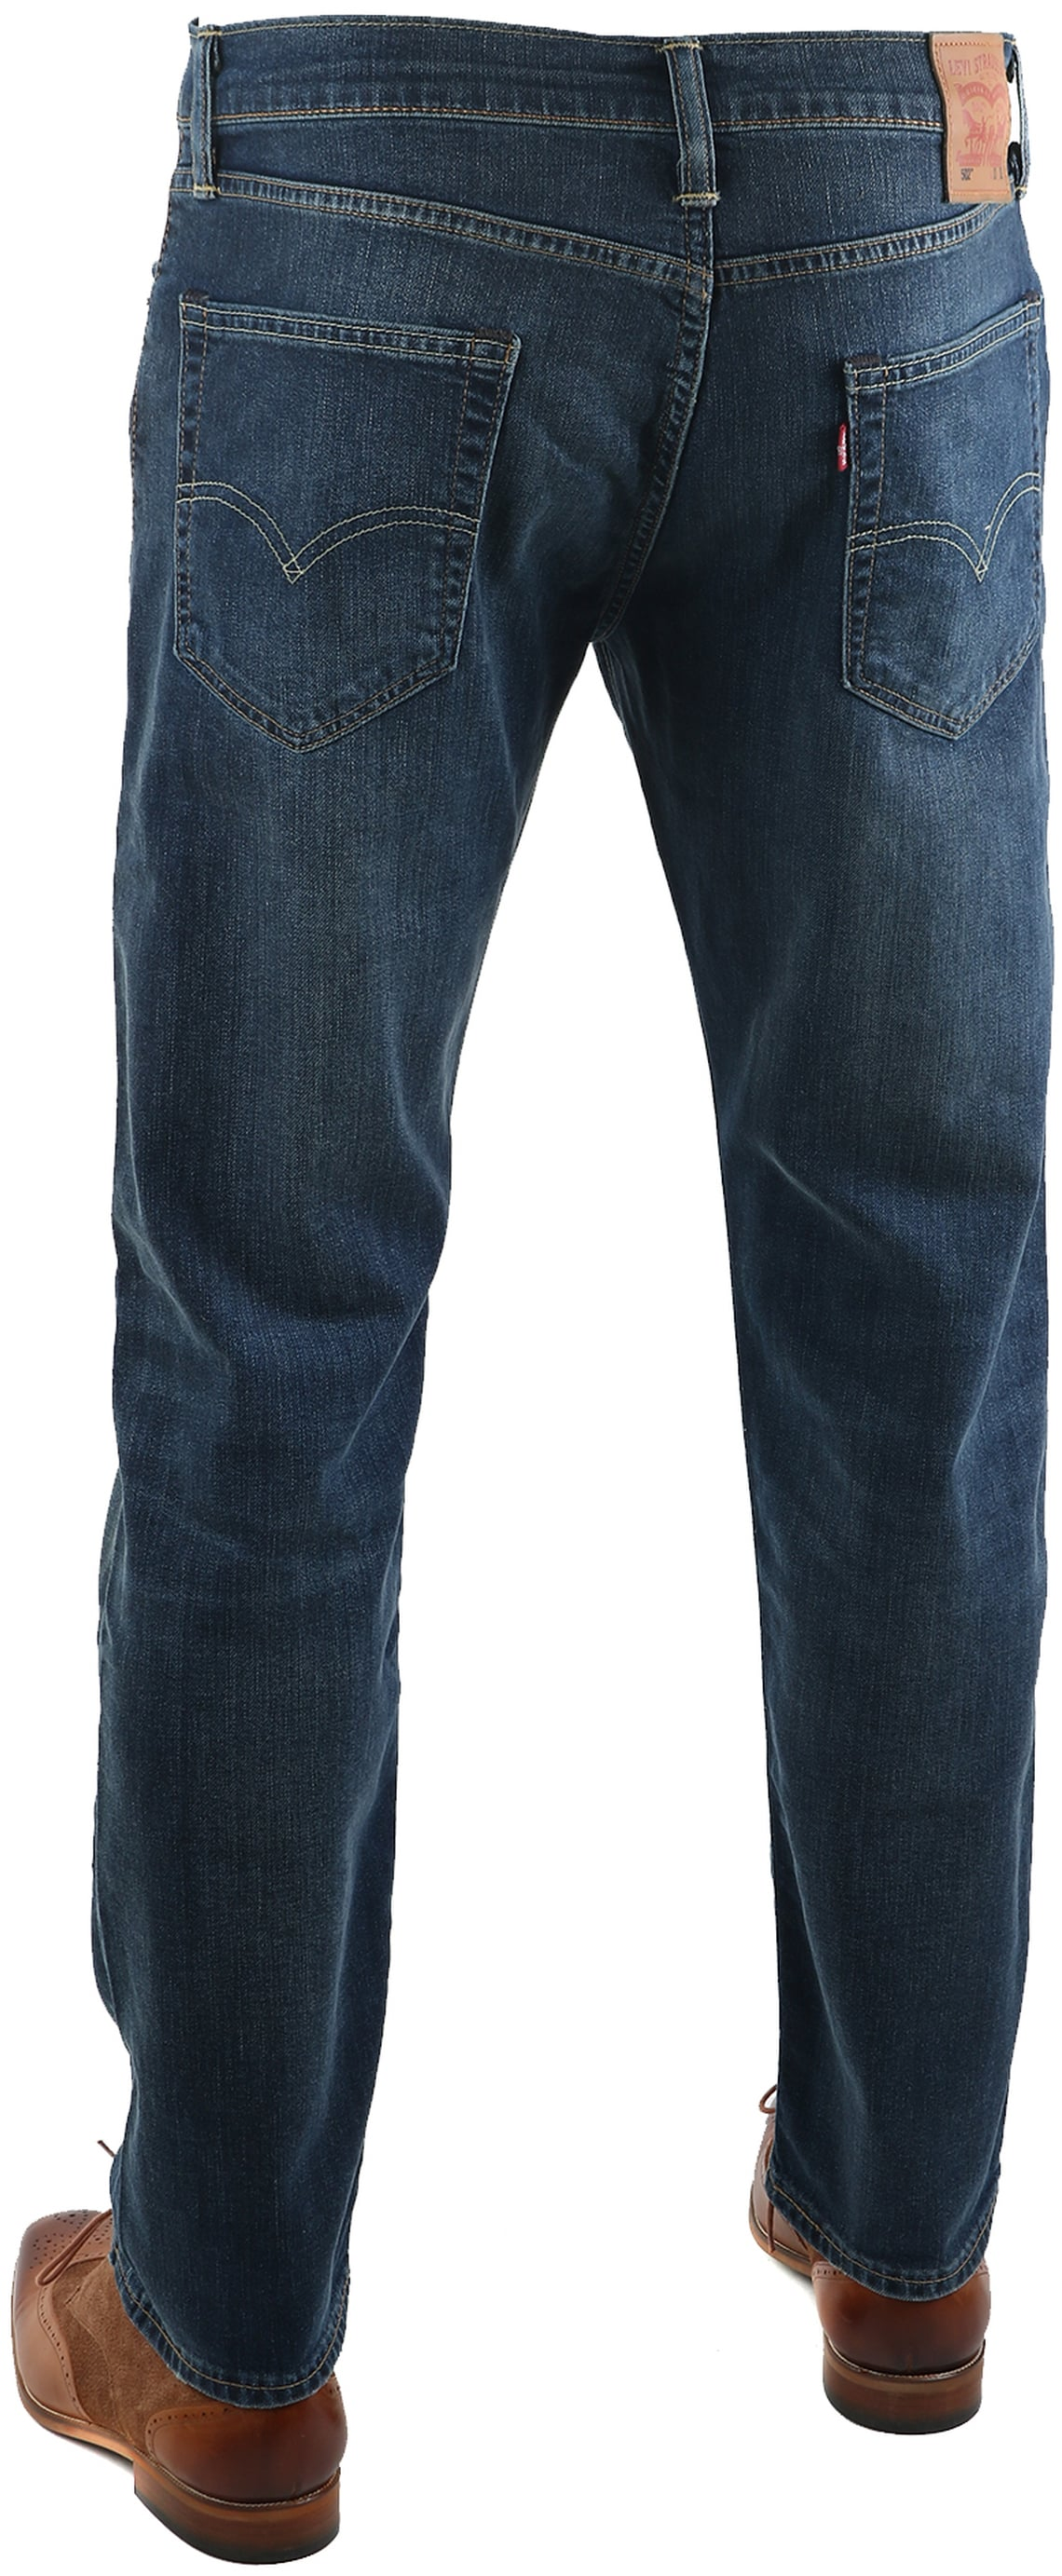 Levi's 502 Jeans Torch Washed Blue 0017 foto 3